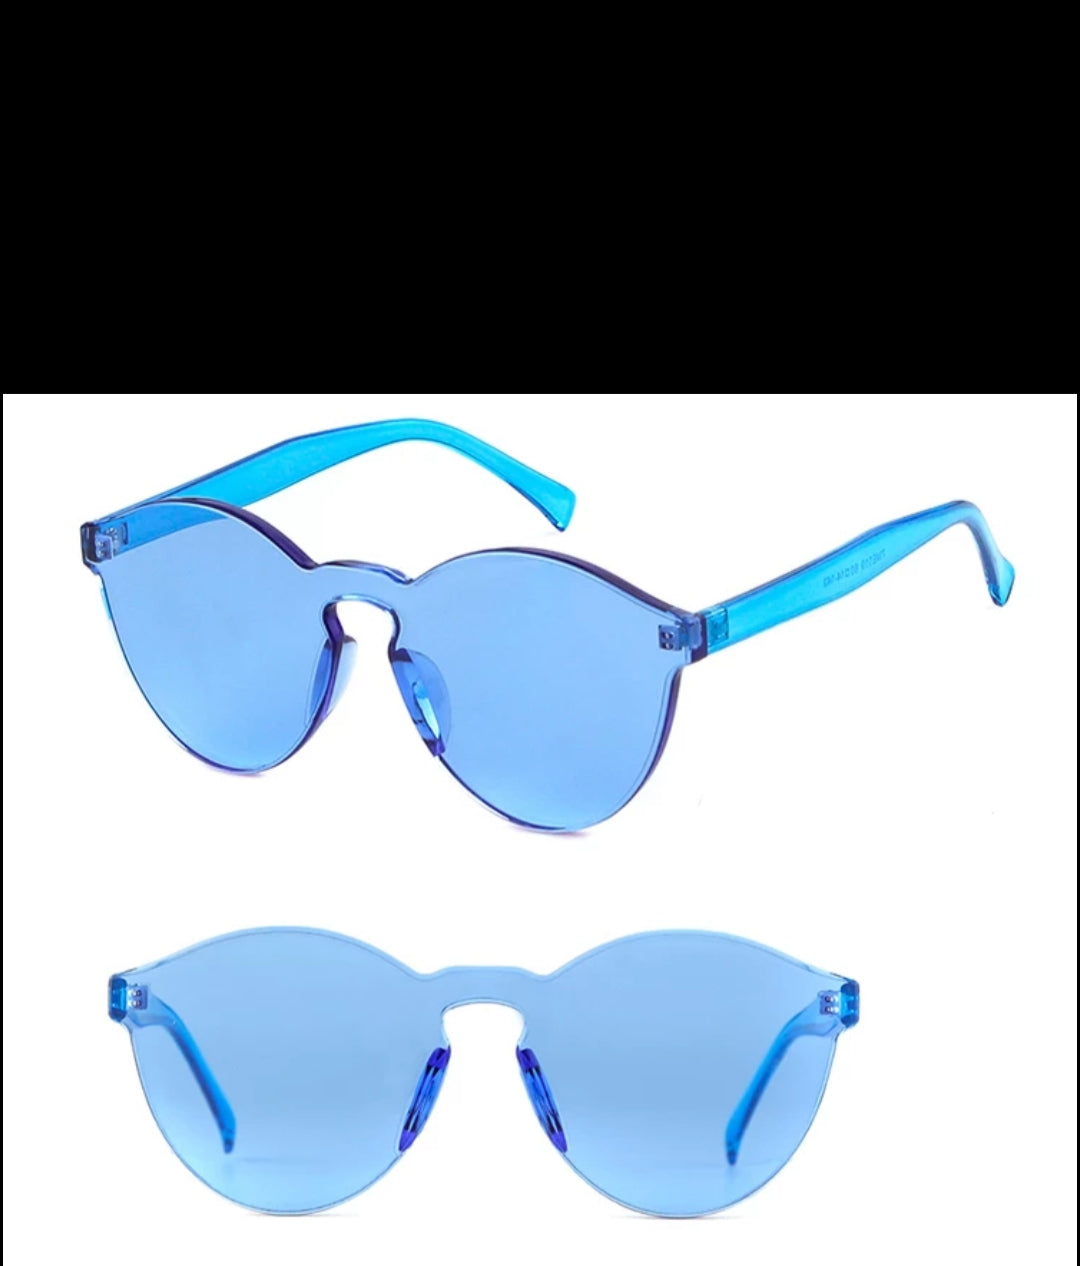 Fashion Sunglasses-Transparent Royal Blue